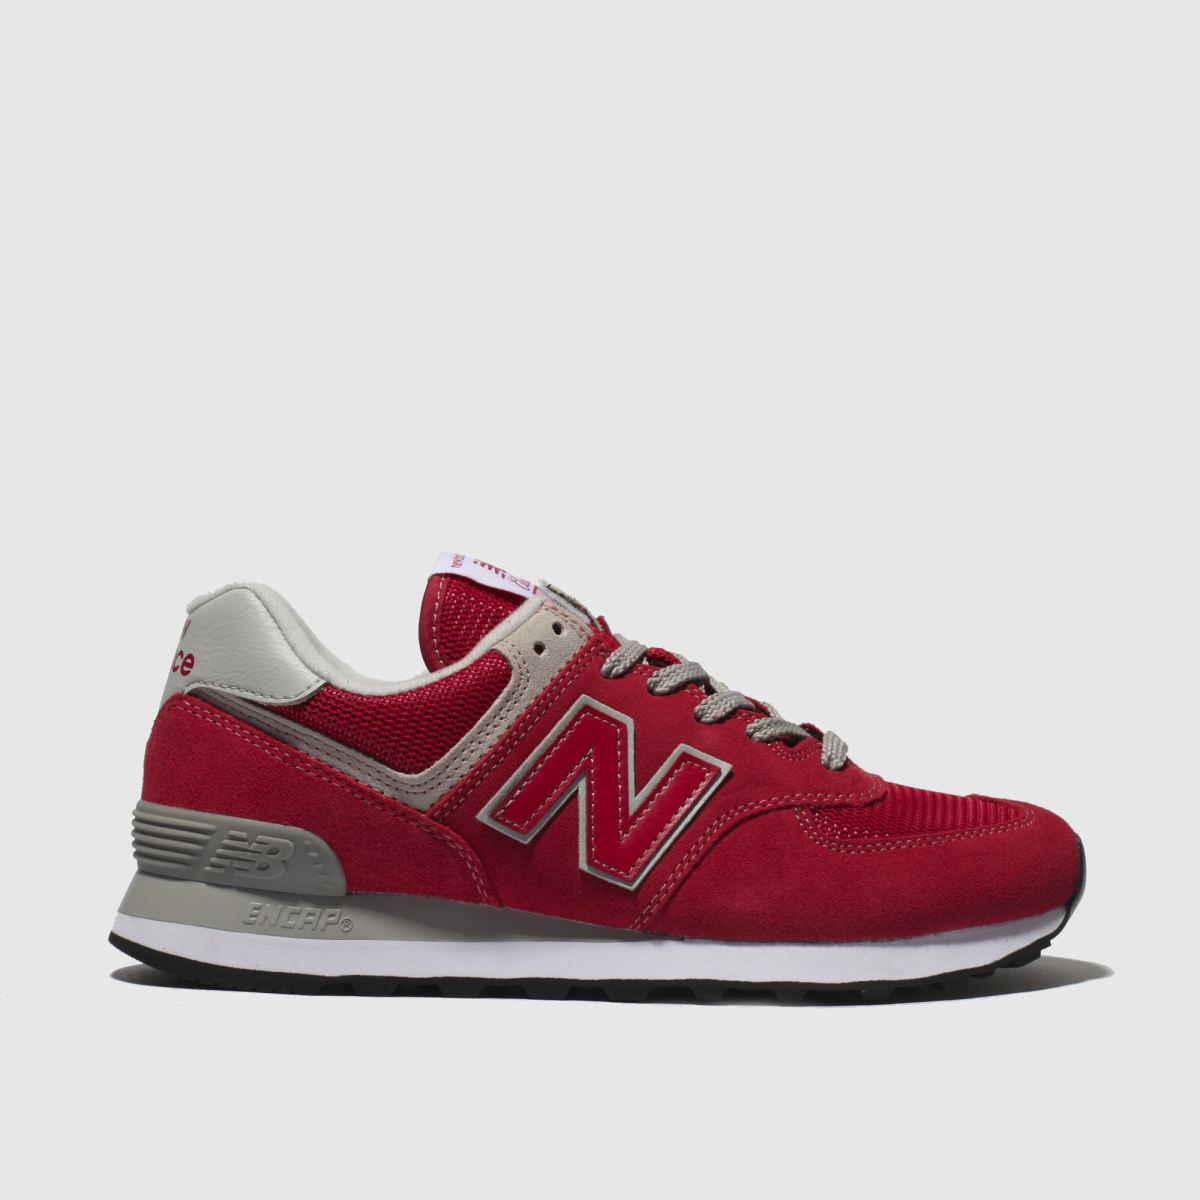 New Balance Red 574 V2 Suede Trainers